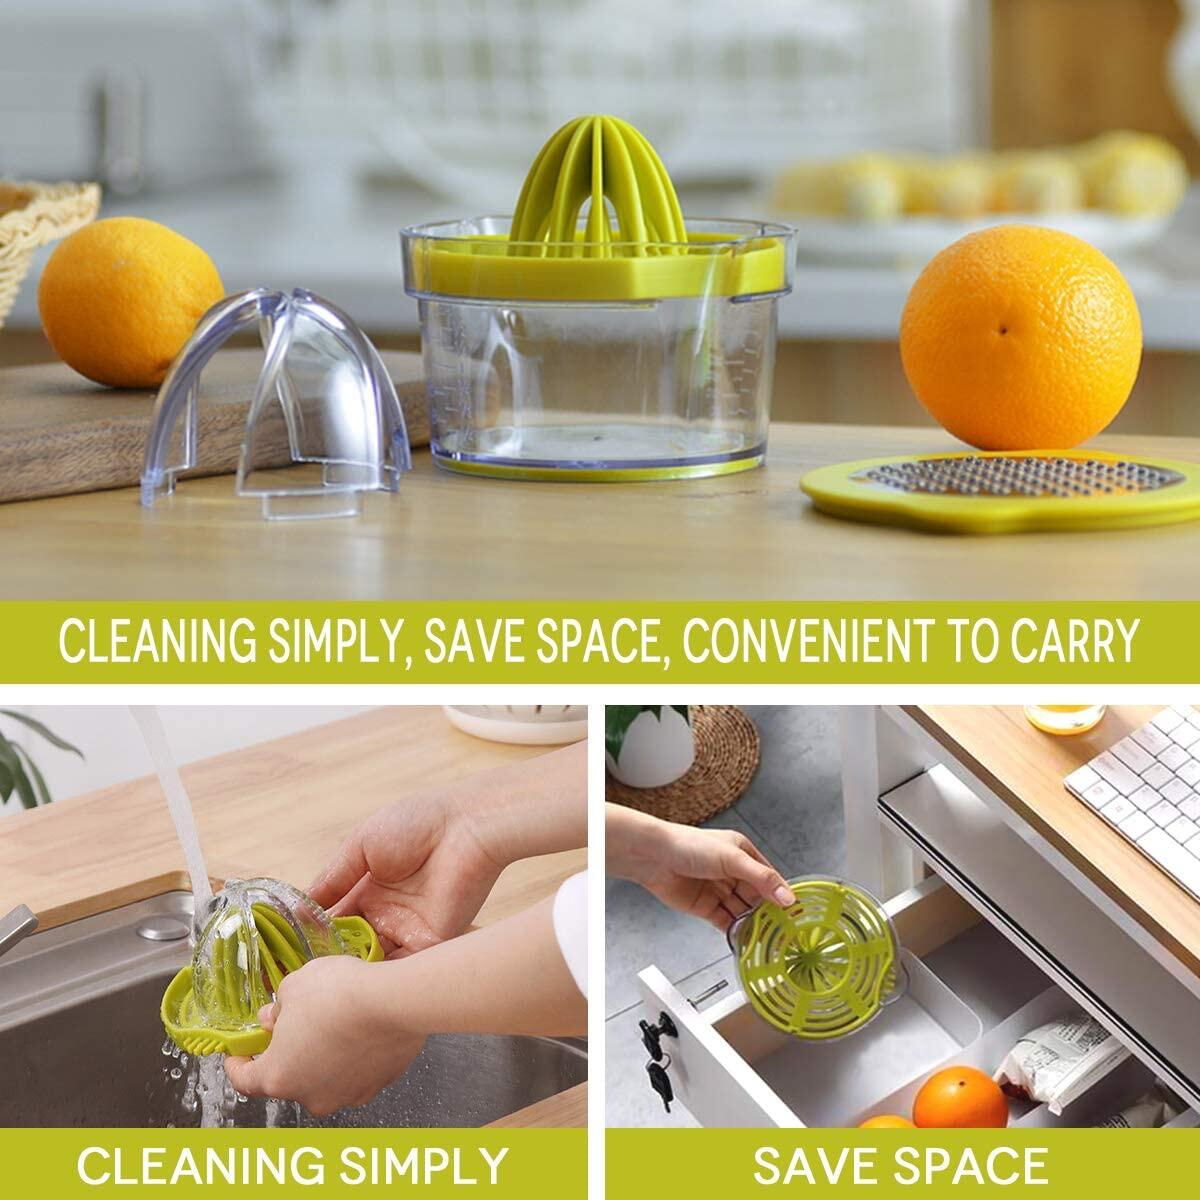 Lemon Orange Juicer Manual Hand Squeezer- Easy To Use Multi-Function Manual Citrus Juicer cum Grater with built-in 12 Ounces Measuring Cup